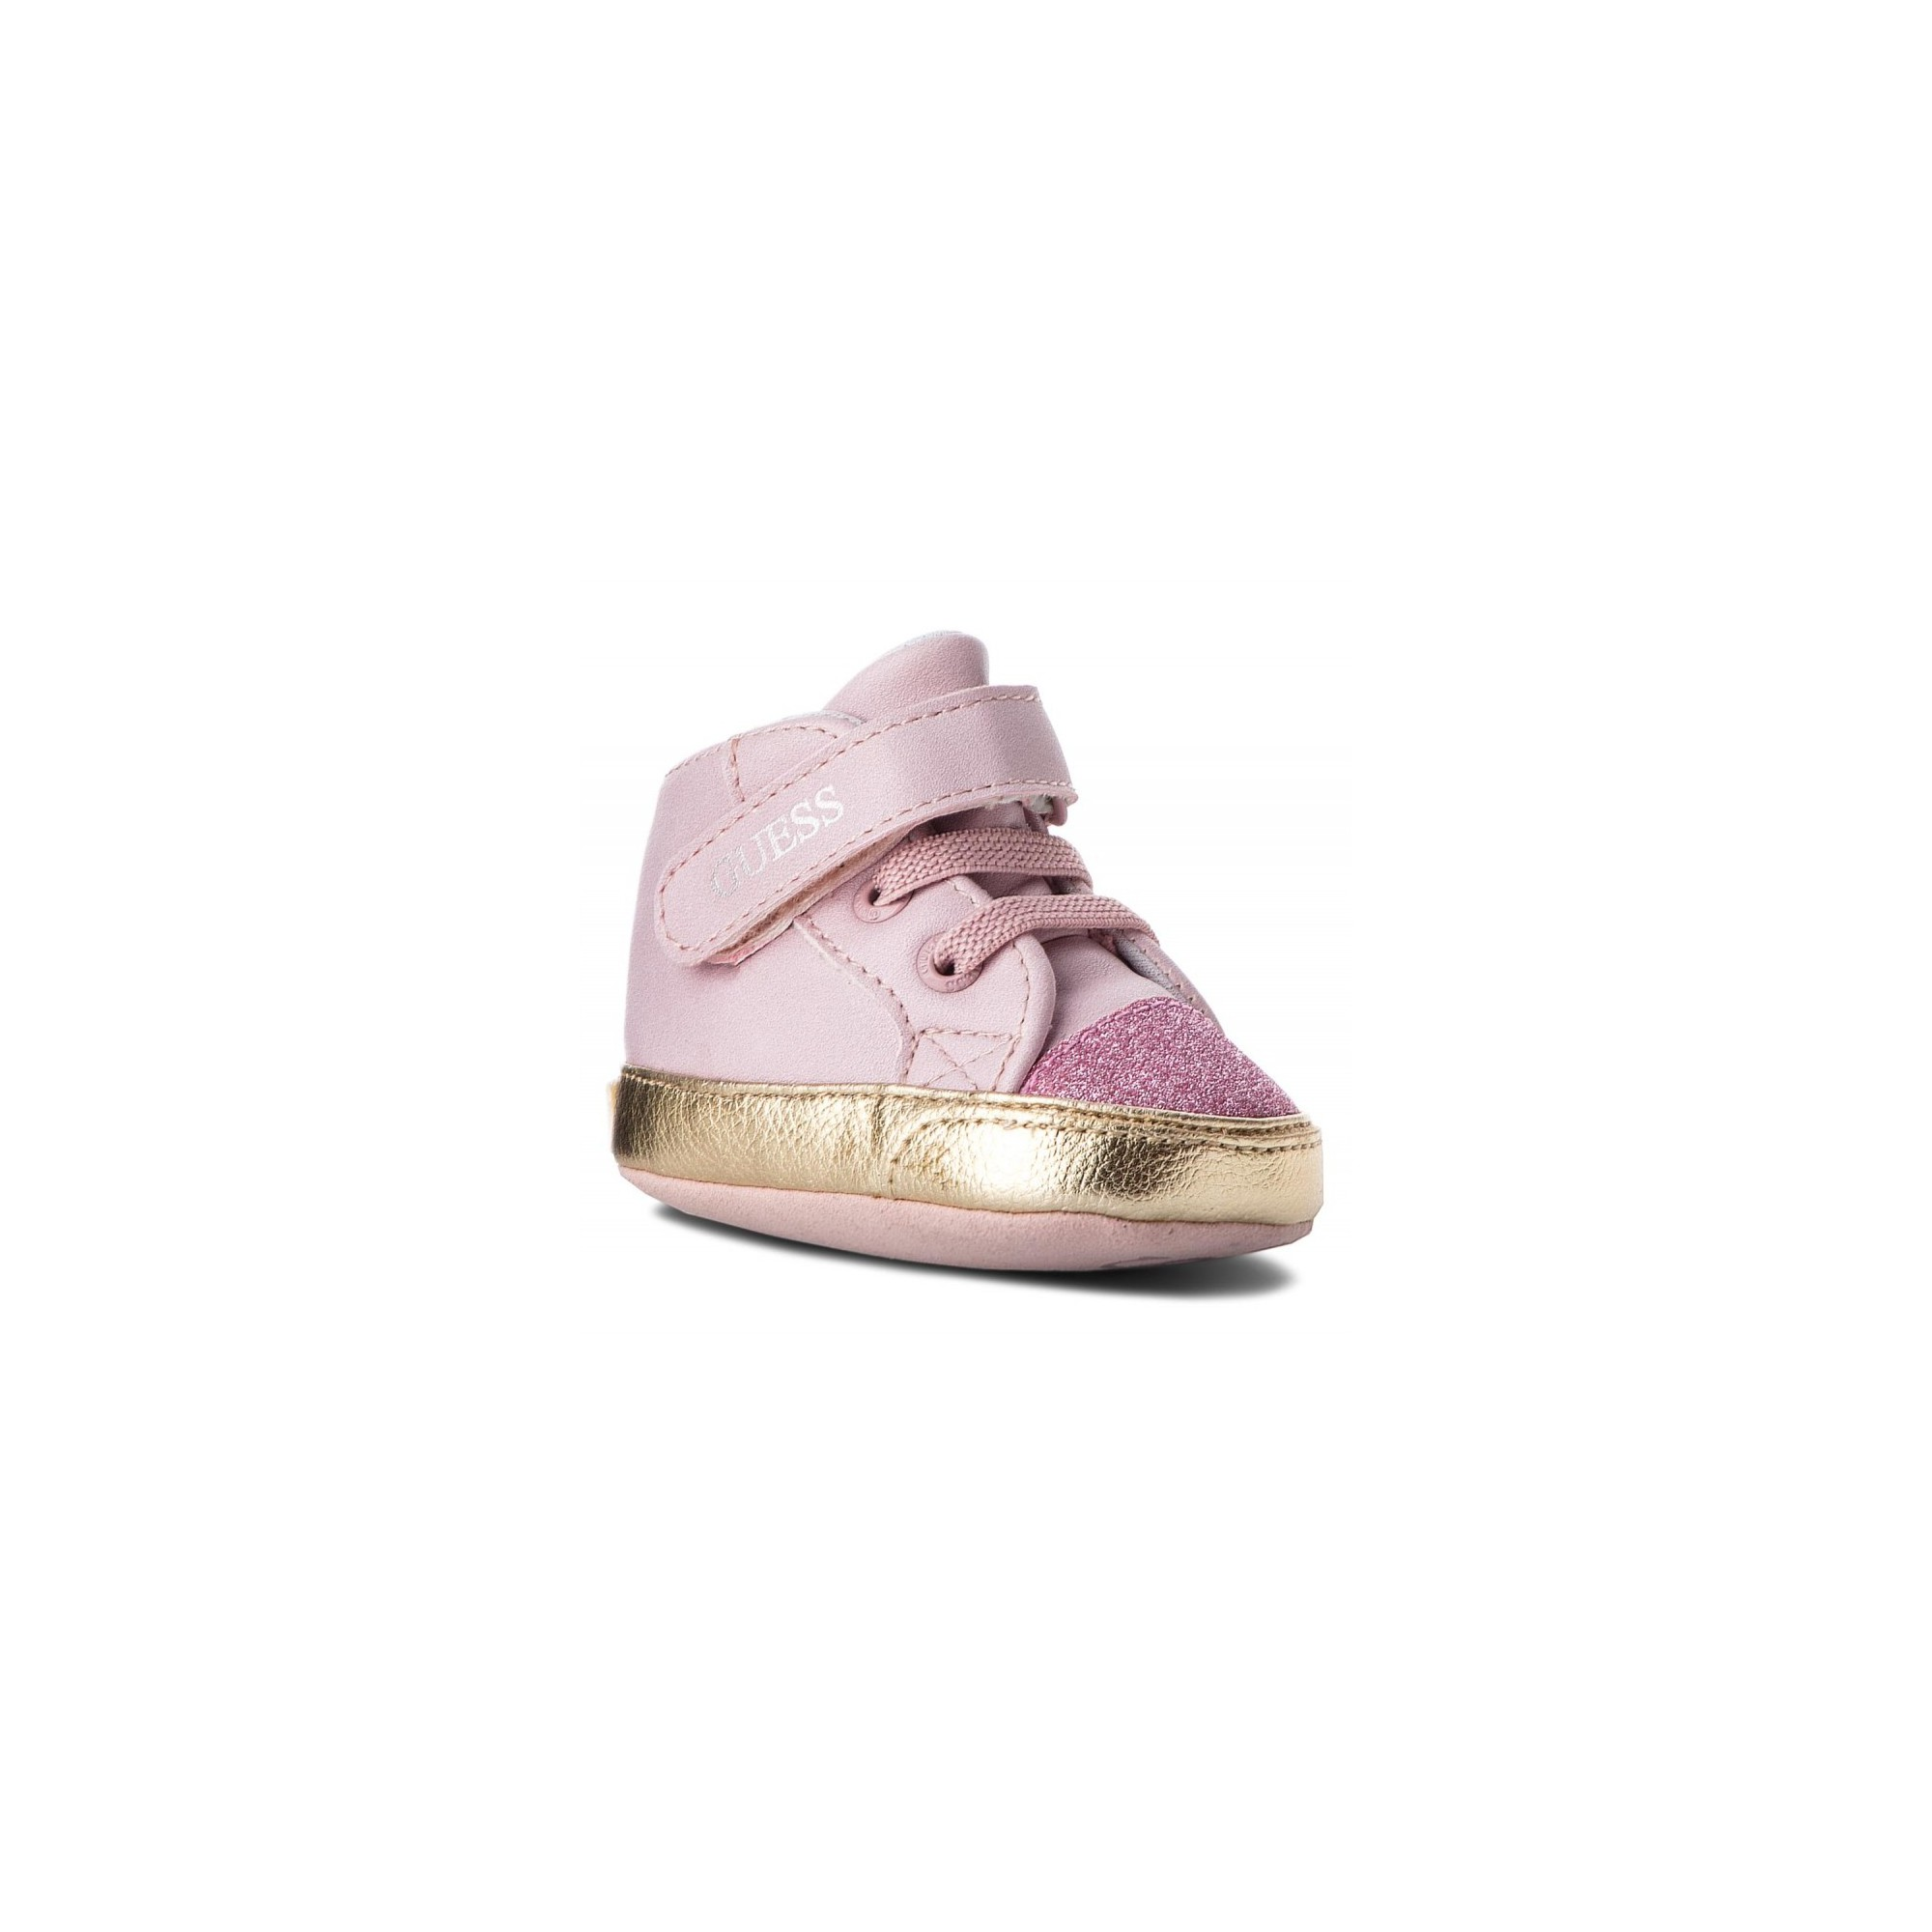 Baskets Rose Filona Guess Fille Bébé W9DYHIE2